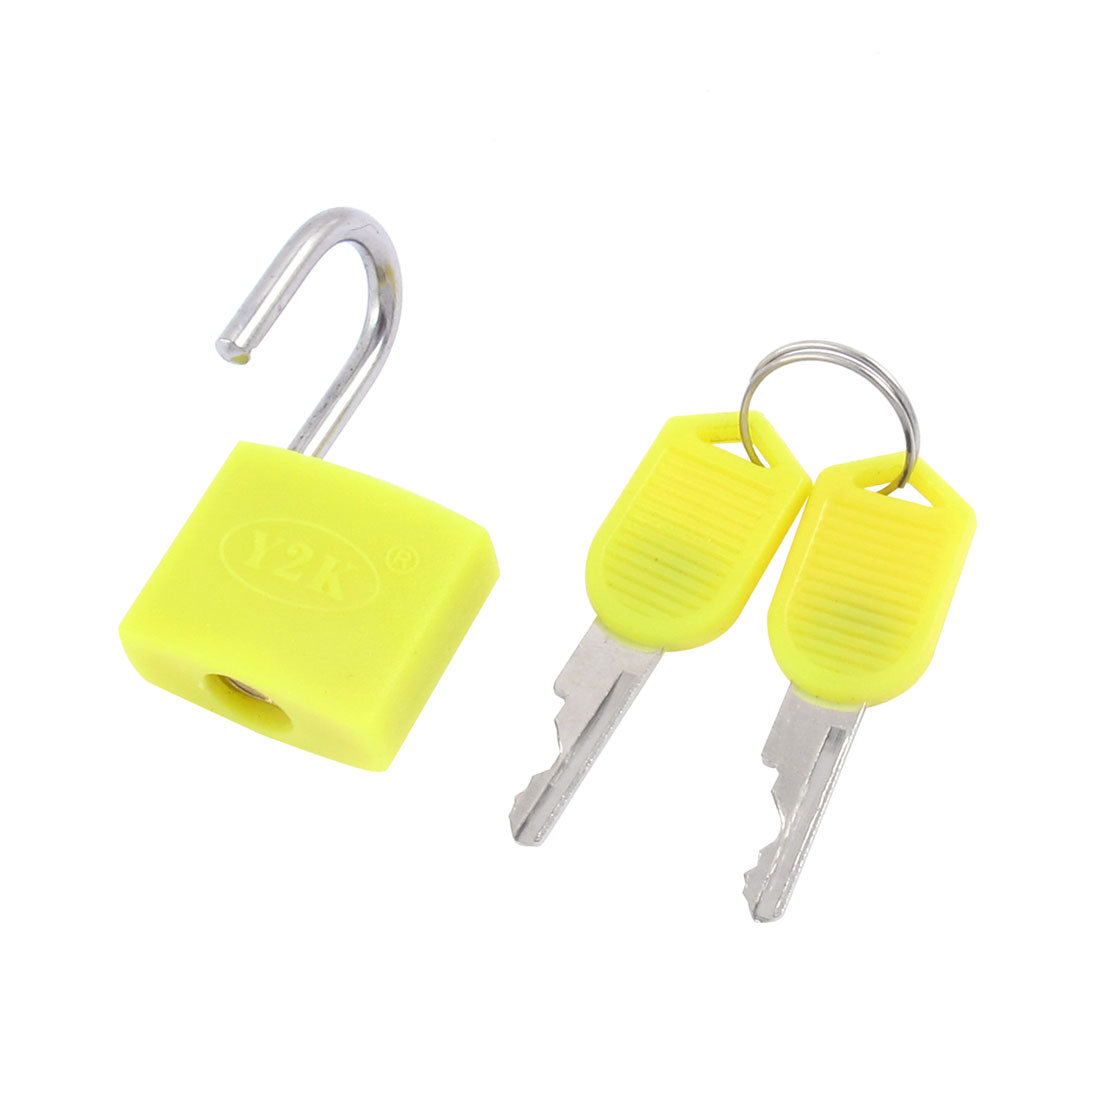 Cabinet Jewlery Box Drawer Suitcase Security Lock Padlock Yellow 23mm Width